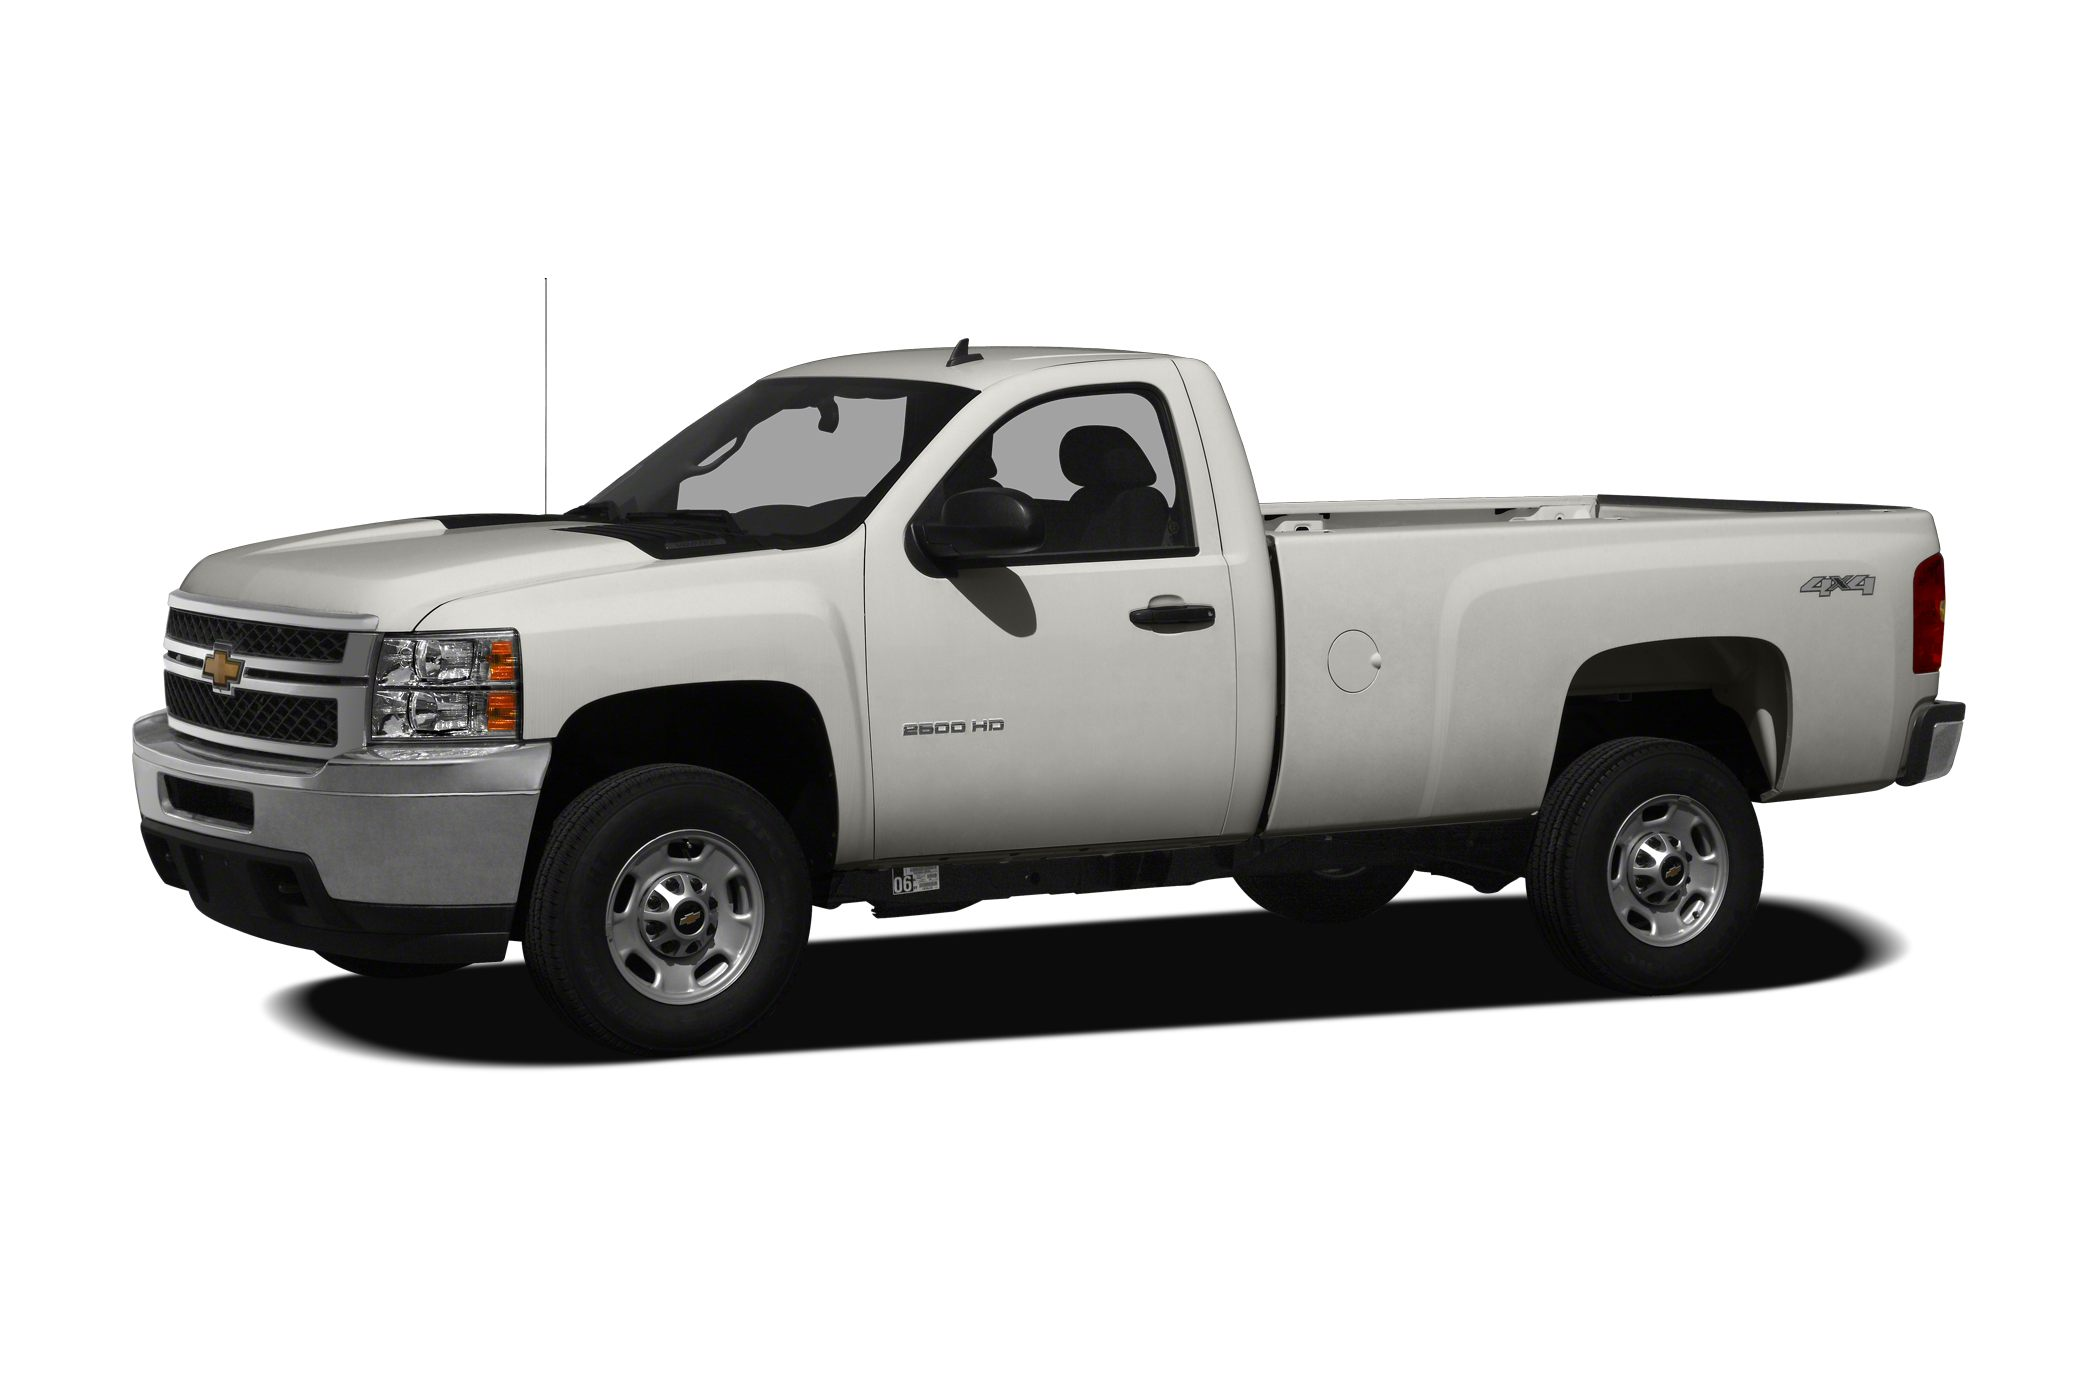 2011 Chevrolet Silverado 2500 LT Crew Cab Pickup for sale in Mabank for $43,087 with 52,012 miles